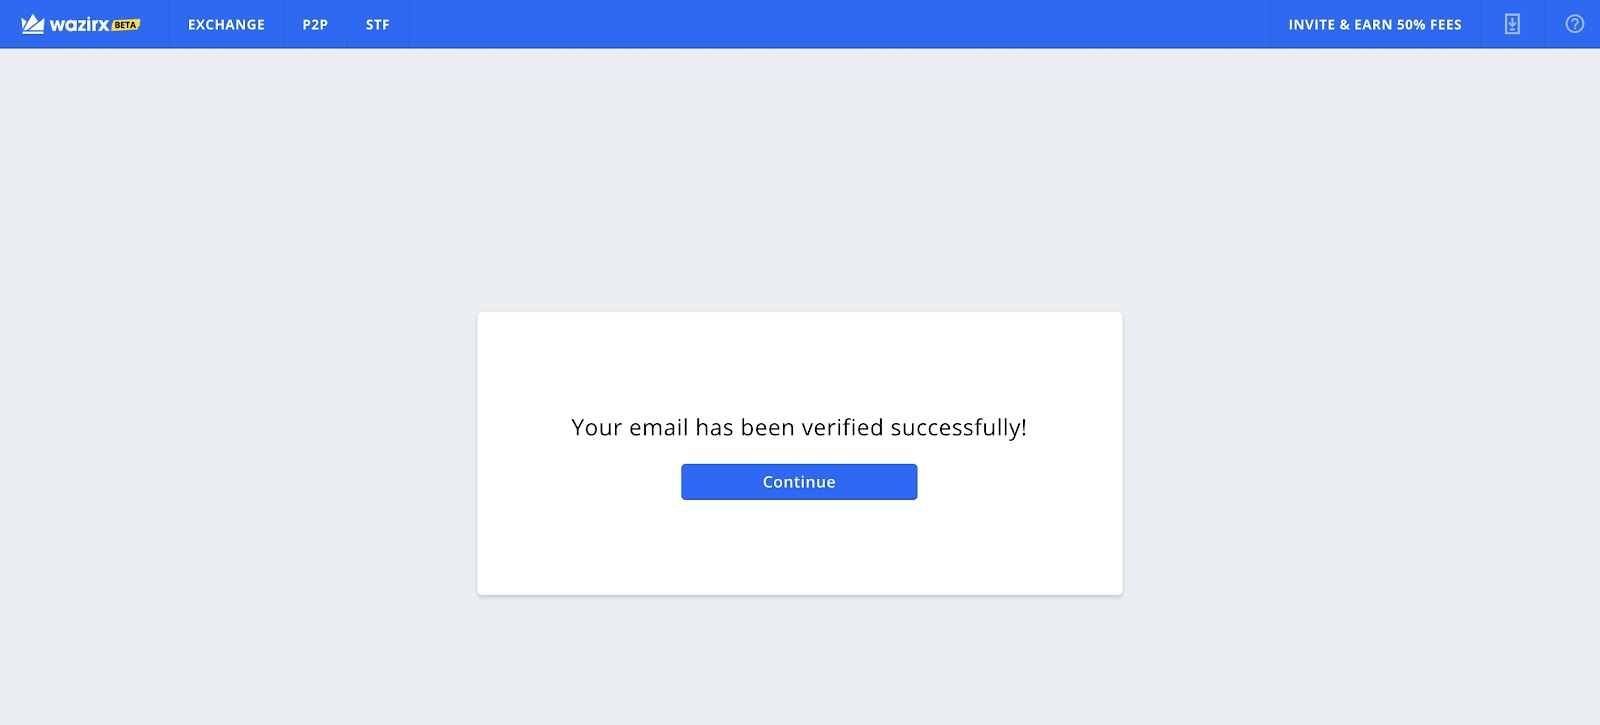 verified successfully page